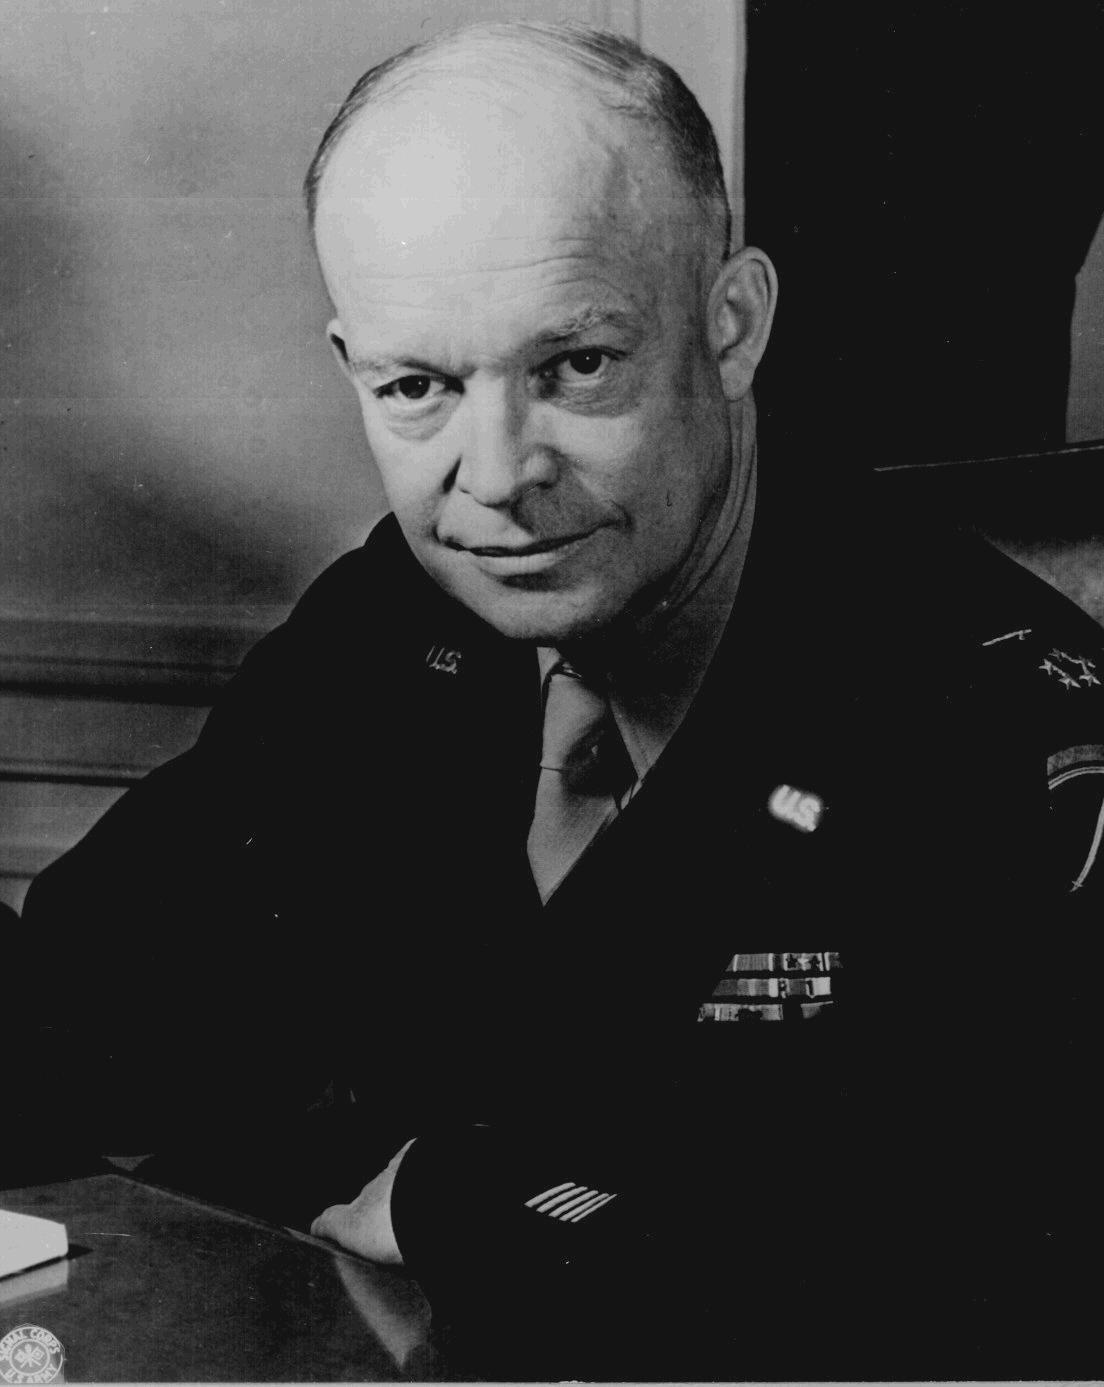 an introduction to the political history of general dwight d eisenhower Enjoy the best dwight d eisenhower quotes at brainyquote should any political party attempt to abolish social security and eliminate labor laws and farm programs, you would not hear of that party again in our political history dwight d eisenhower insurance, social, laws.